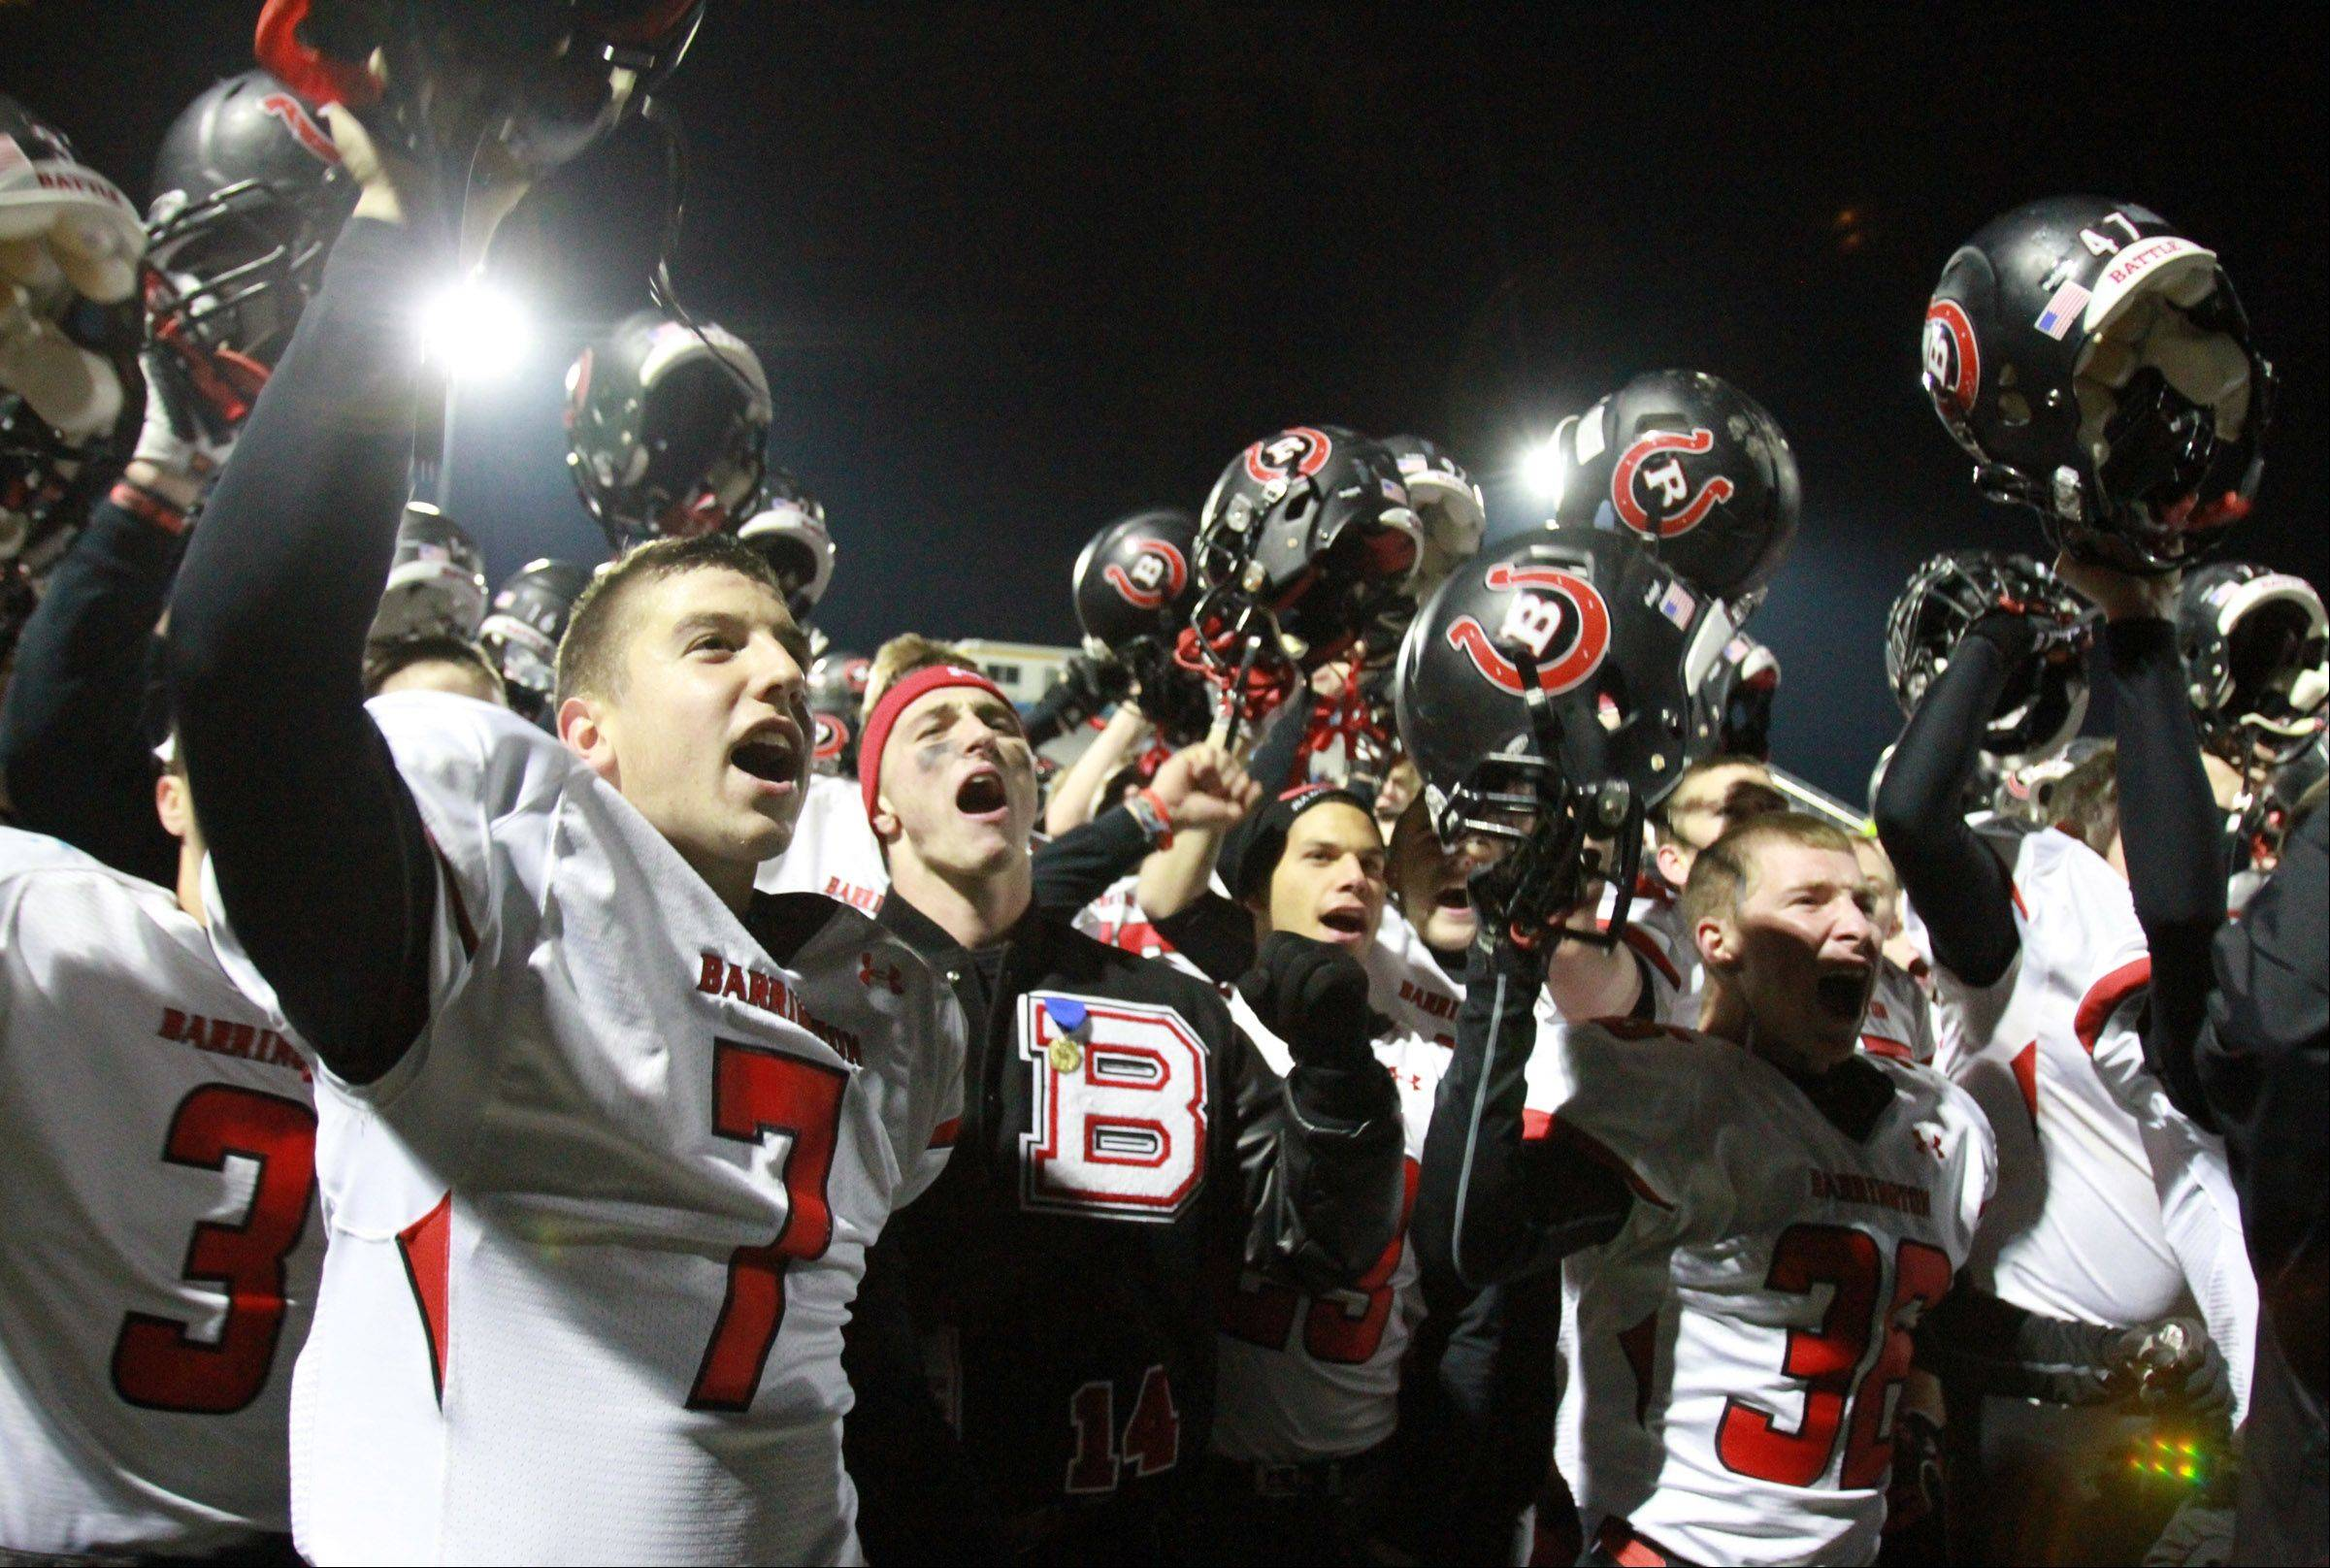 Barrington sings the school song in front of student fans after winning Saturday against Warren.